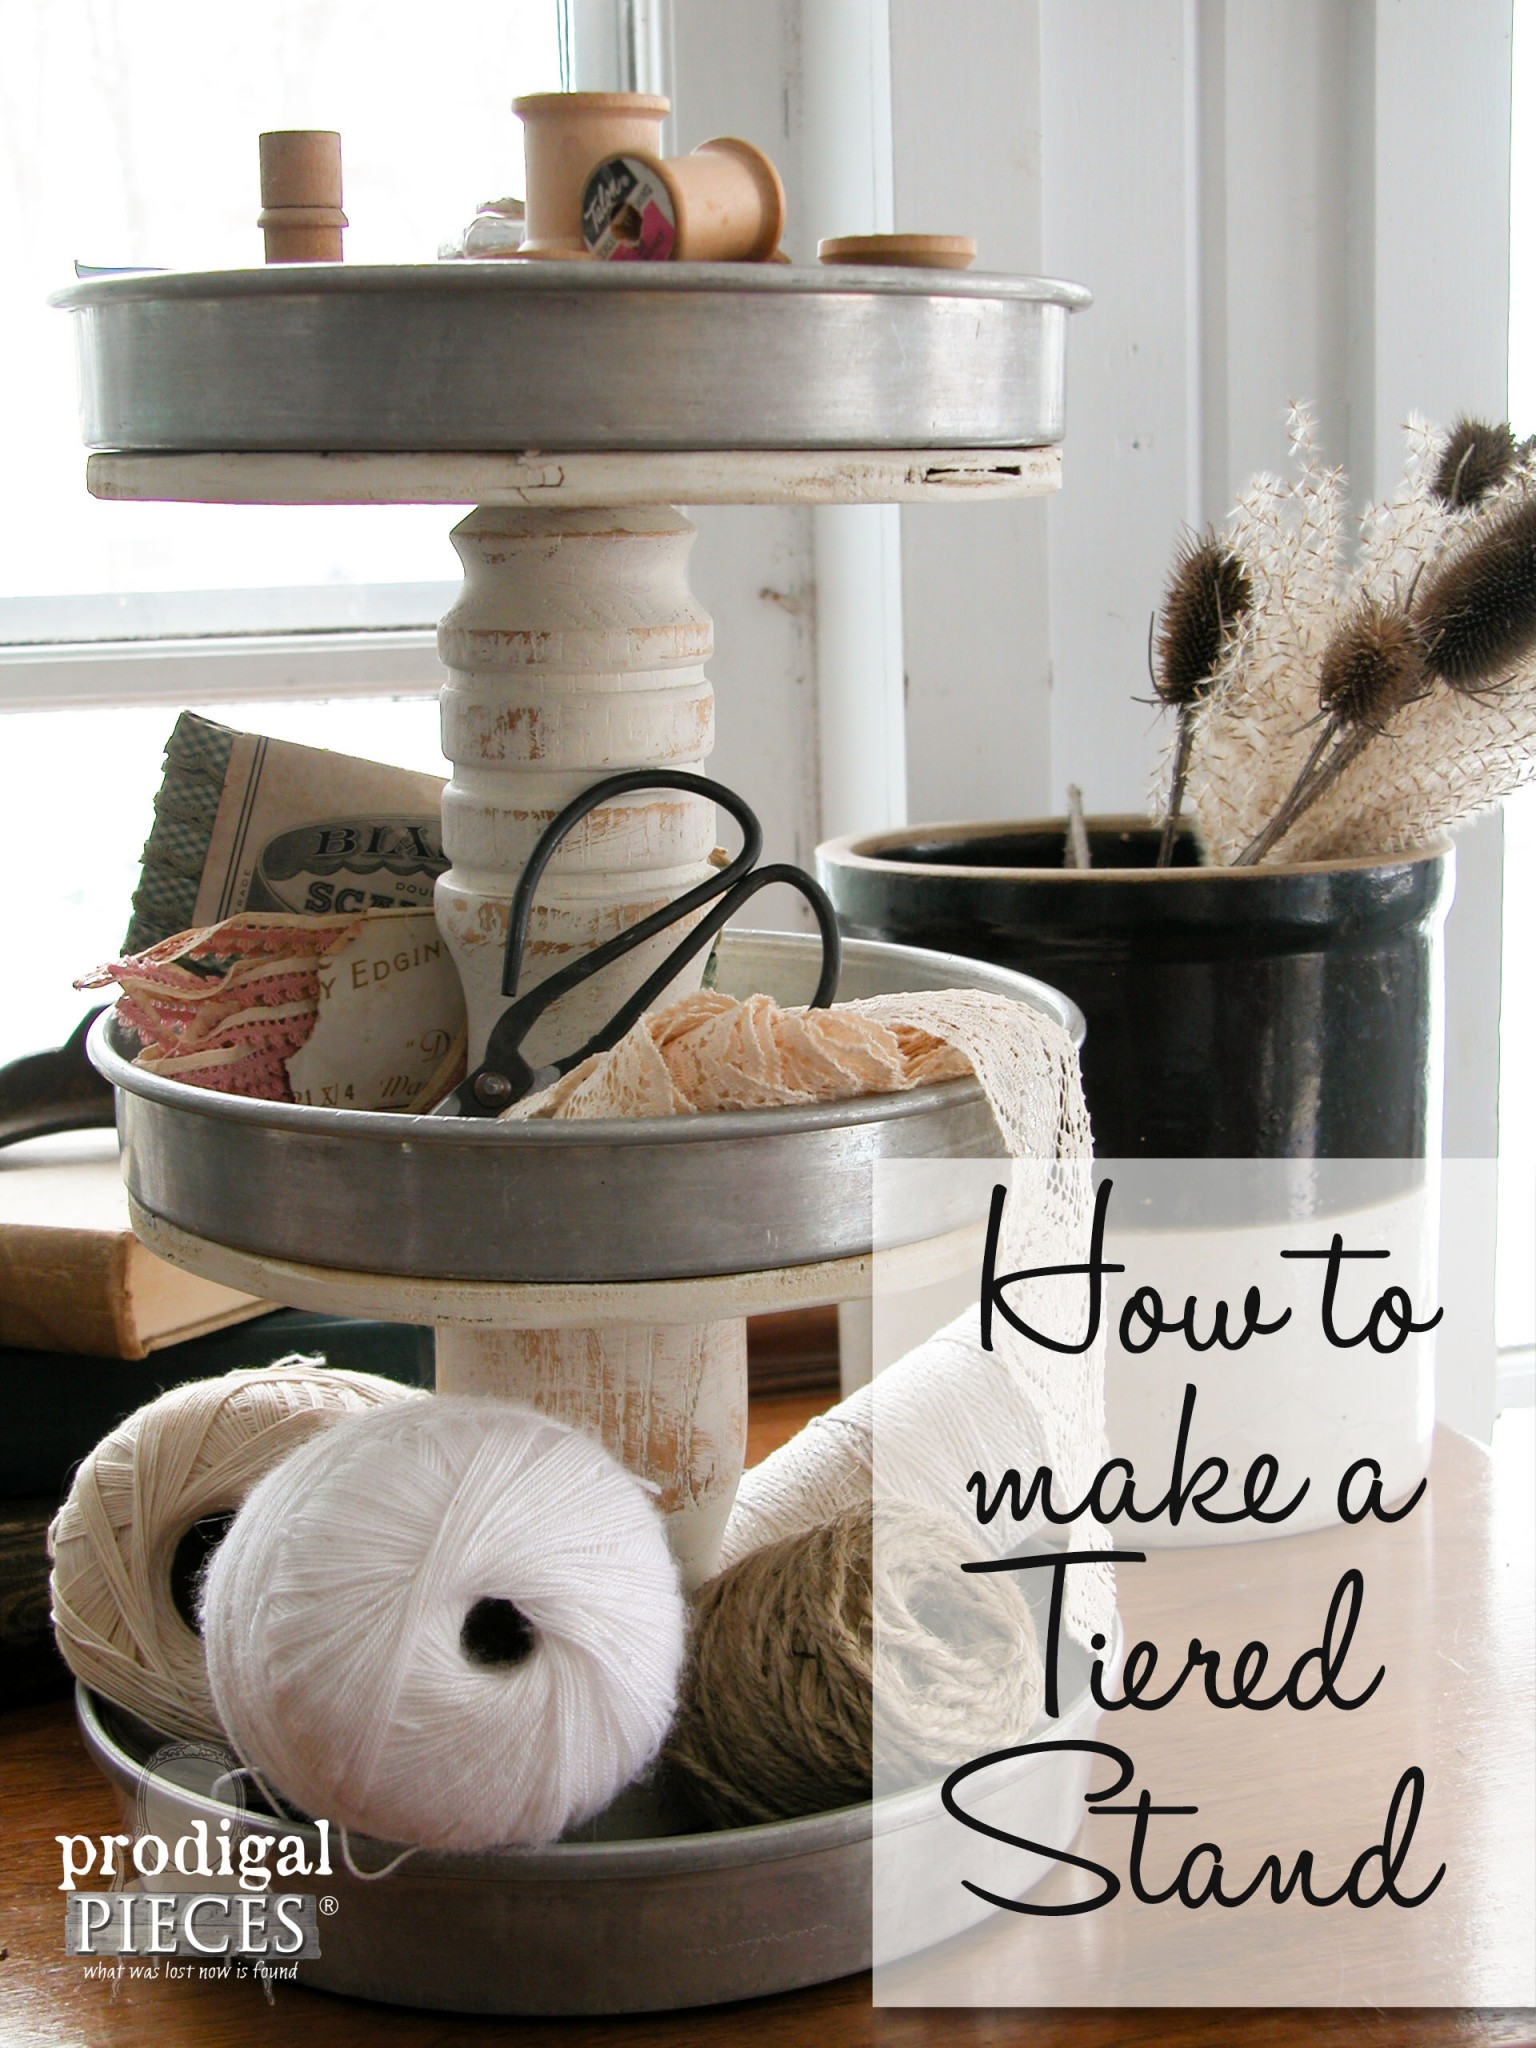 How to Make a Tiered Stand| Prodigal Pieces | www.prodigalpieces.com